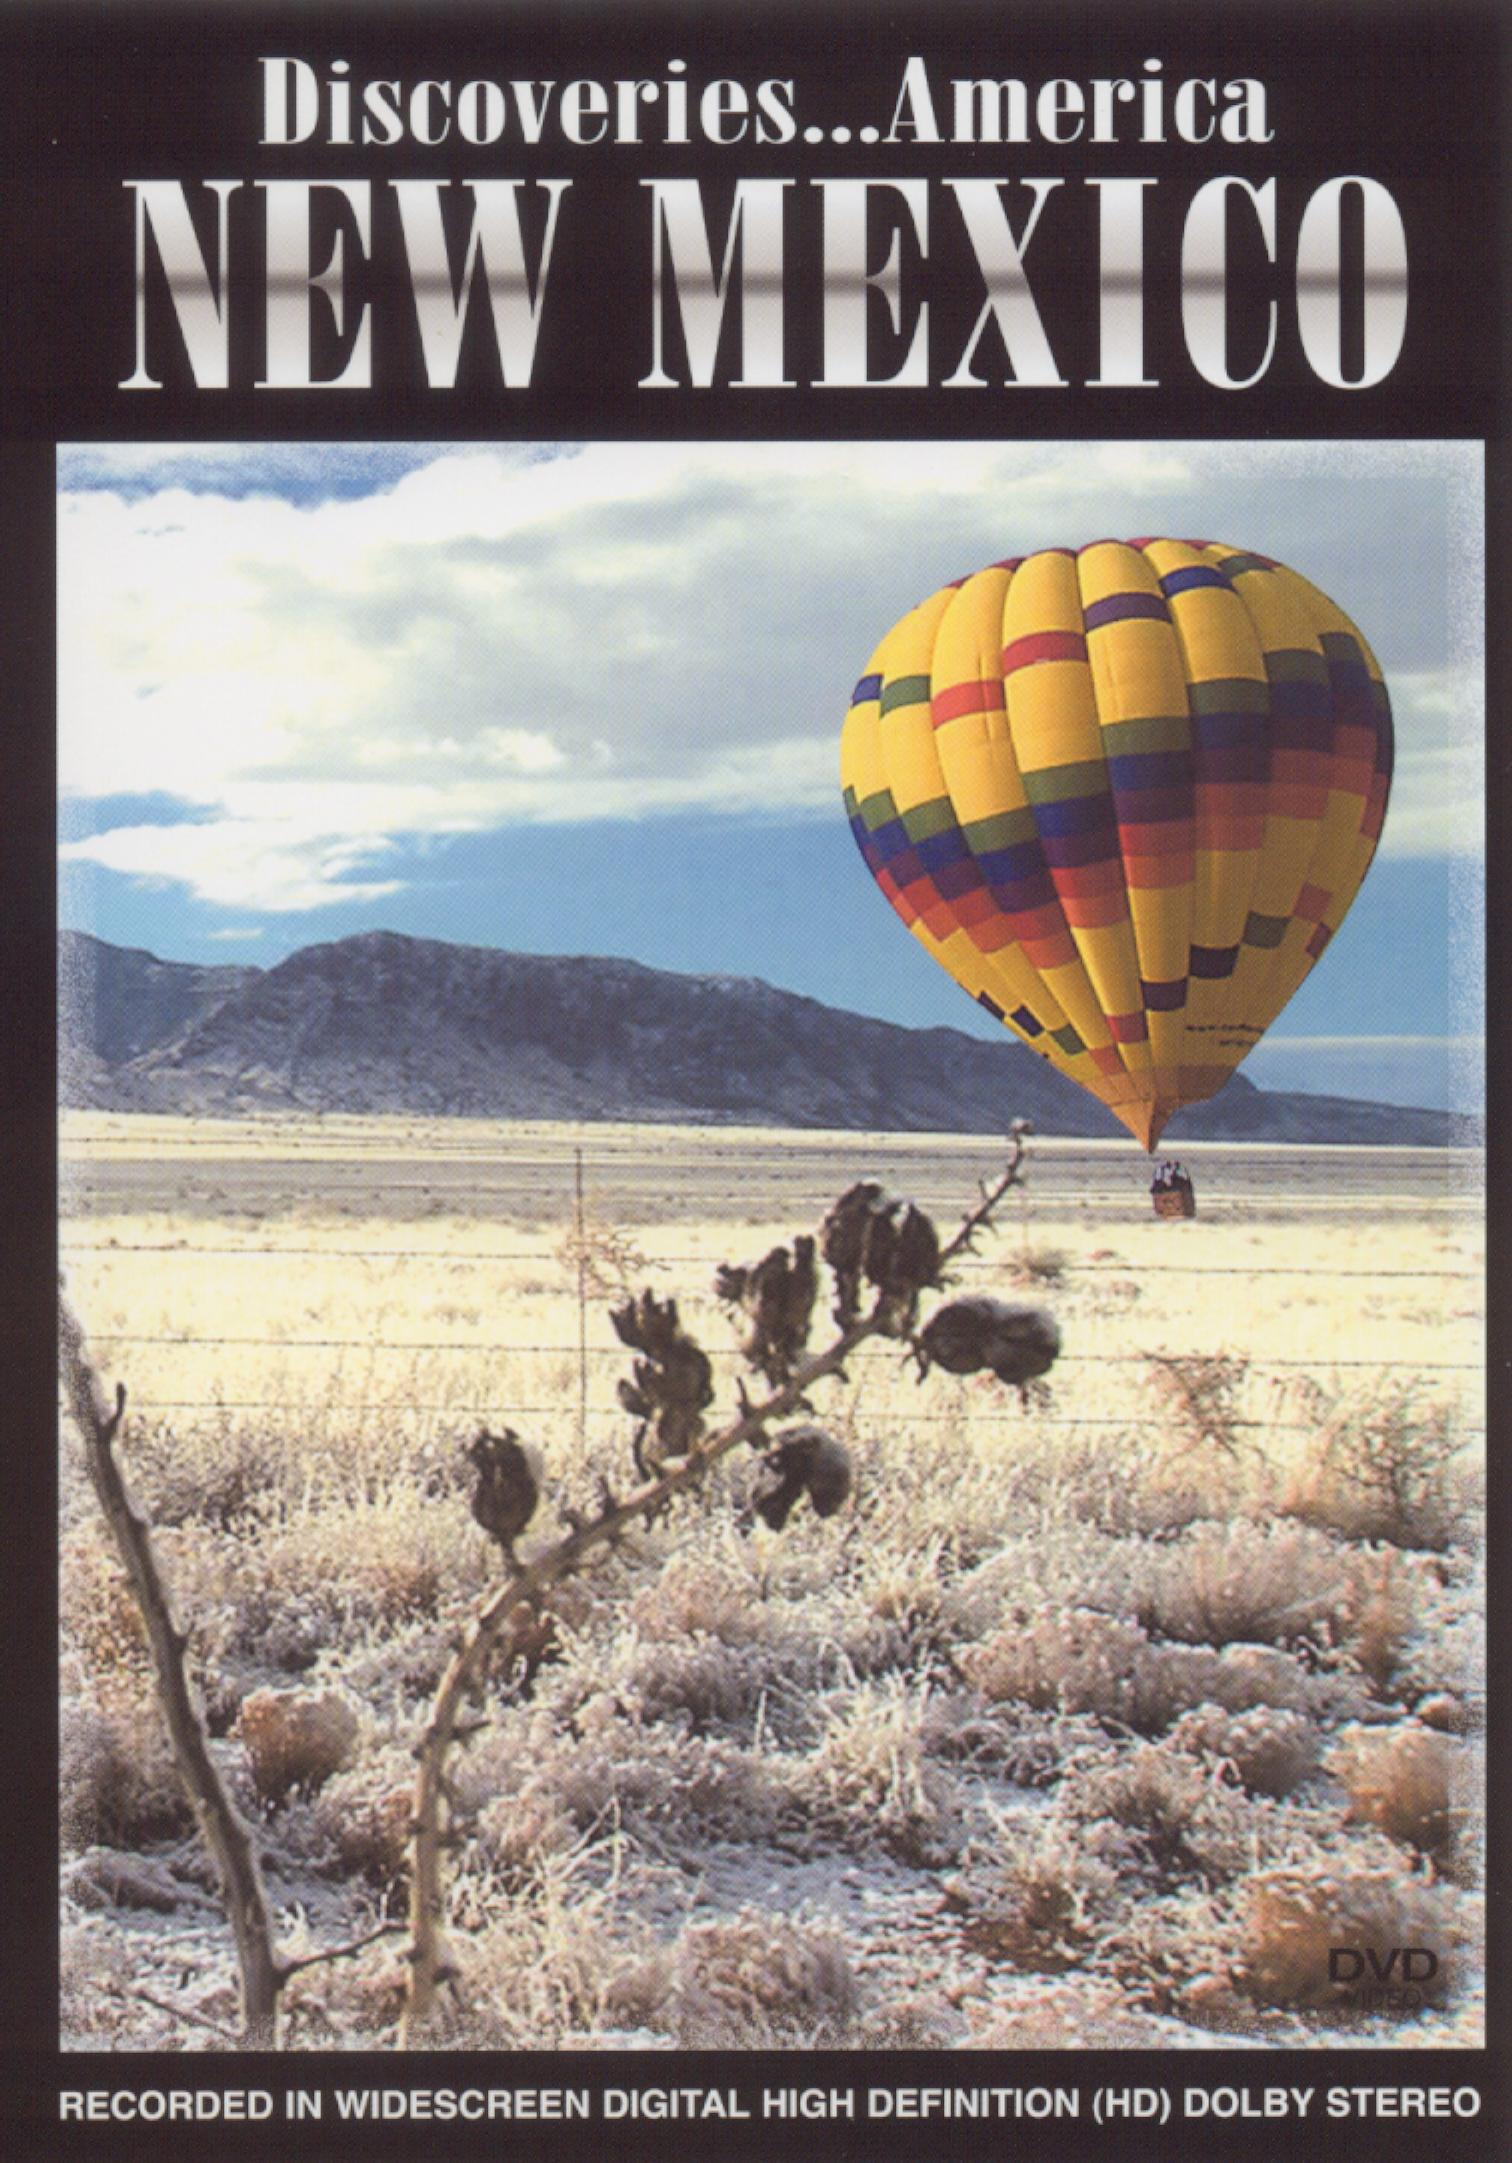 Discoveries... America: New Mexico